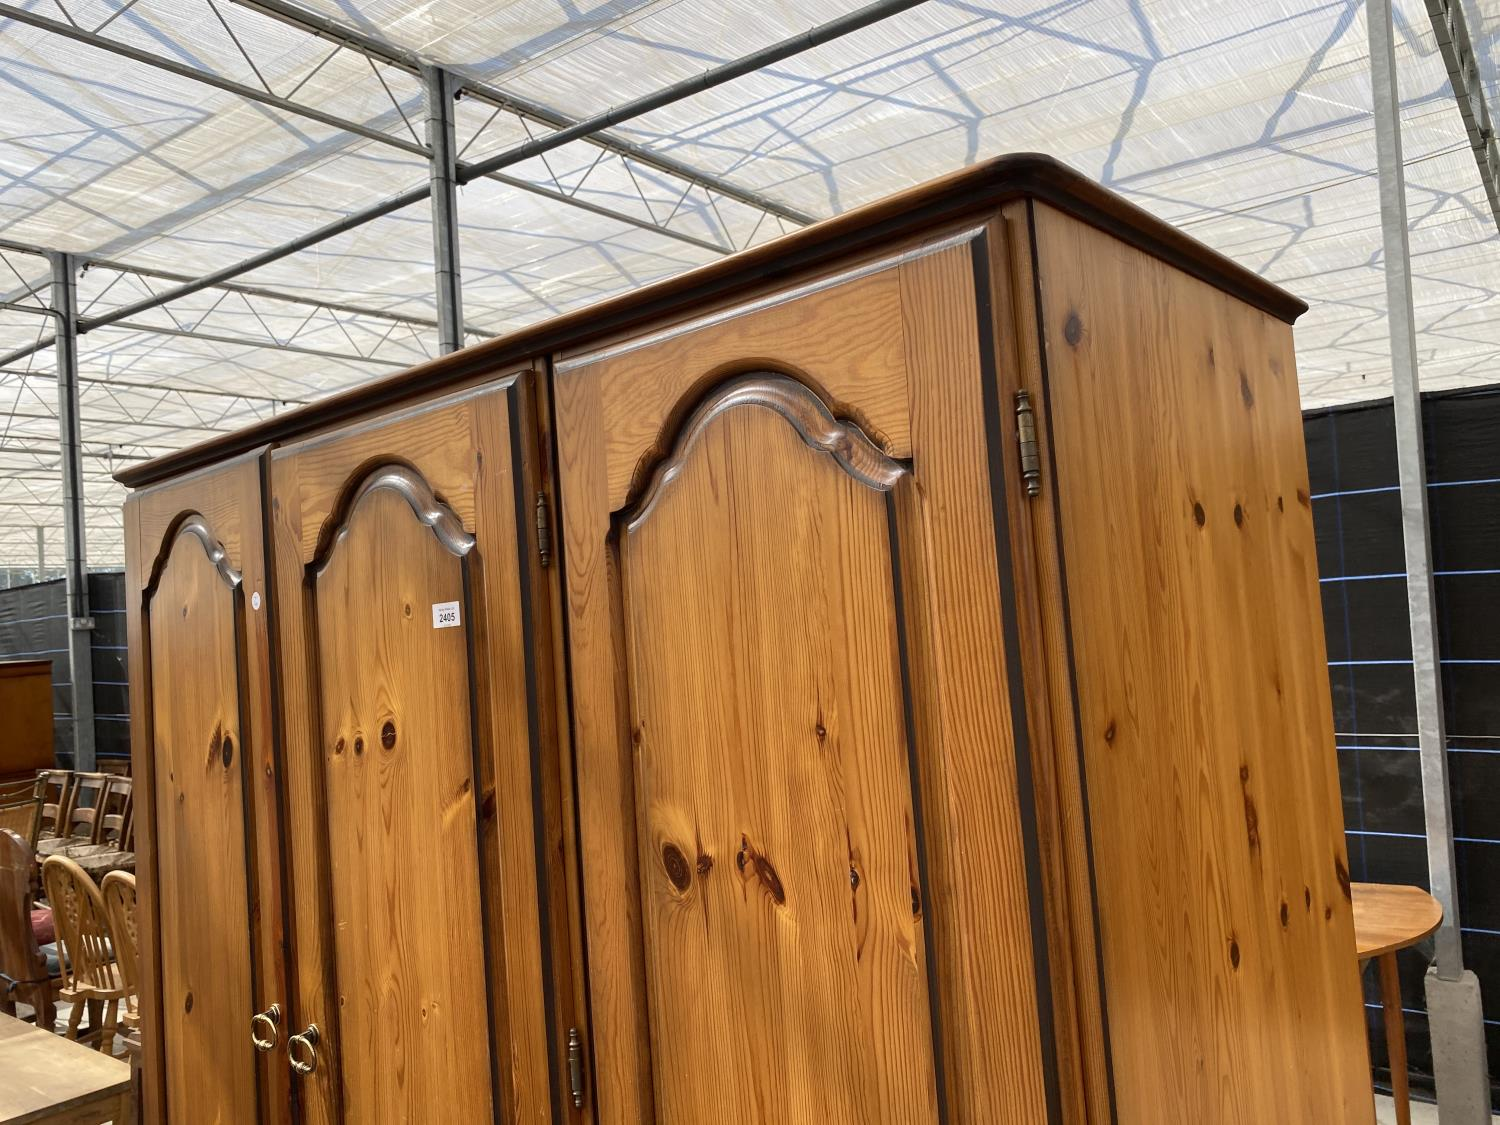 """A MODERN PINE COMBINATION WARDROBE, 52.5"""" WIDE - Image 2 of 4"""